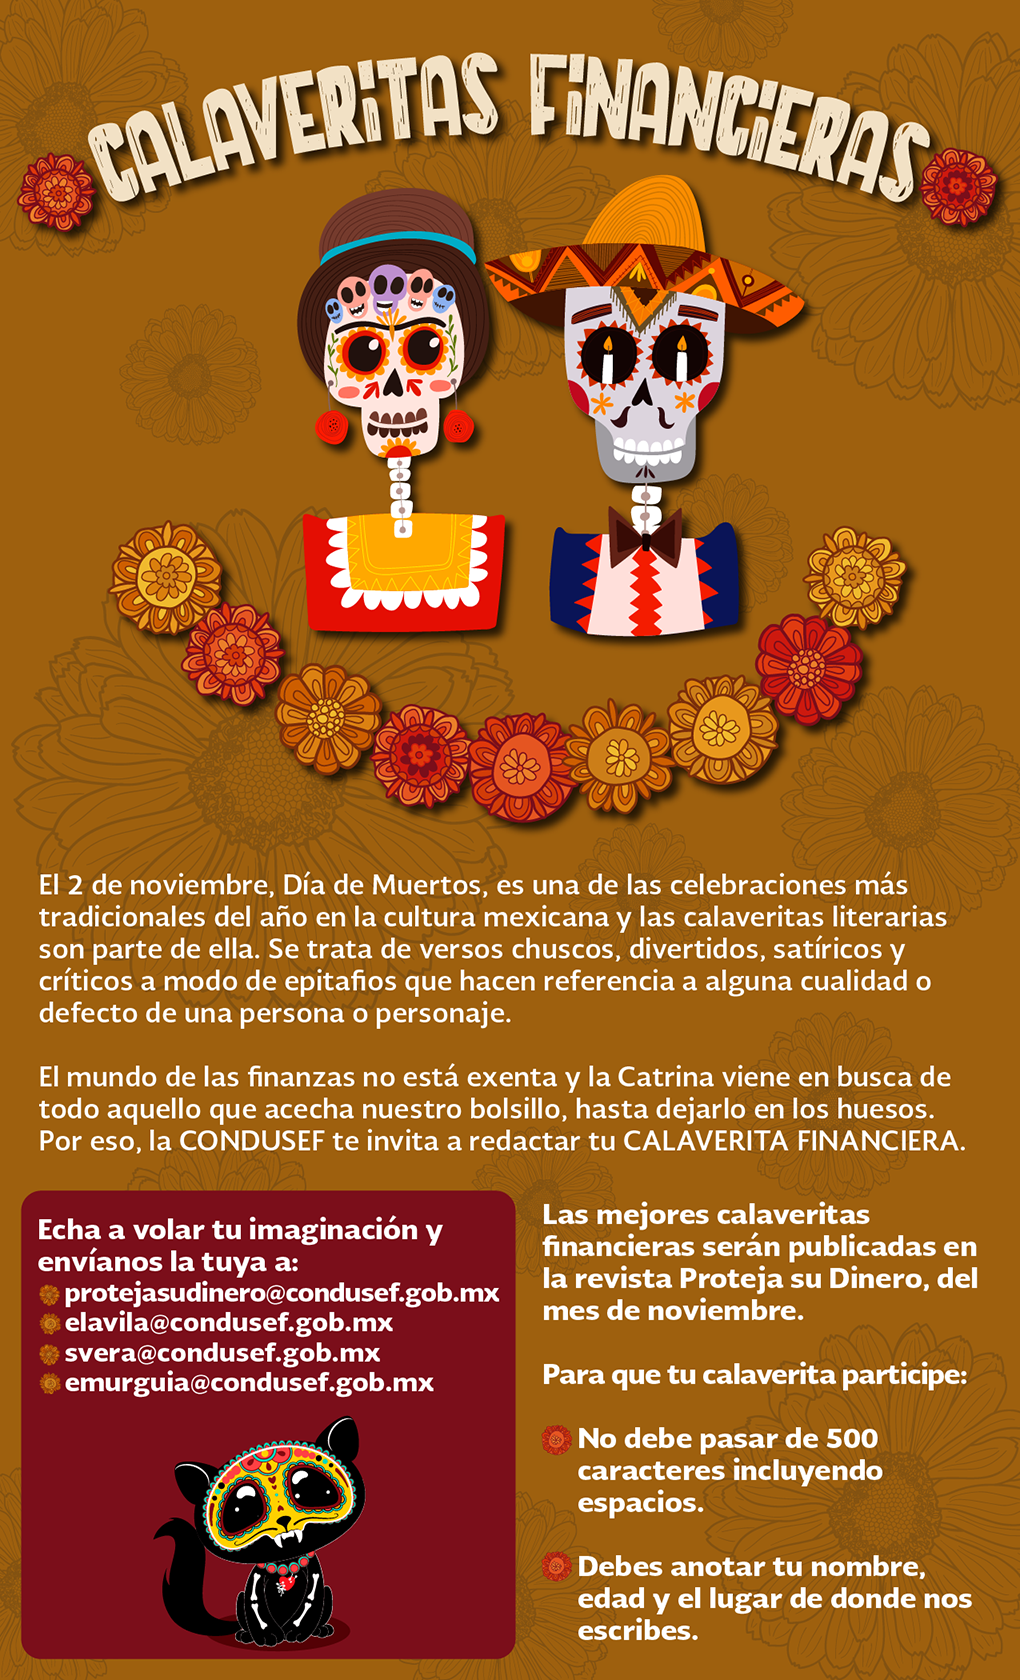 Calaveritas Financieras